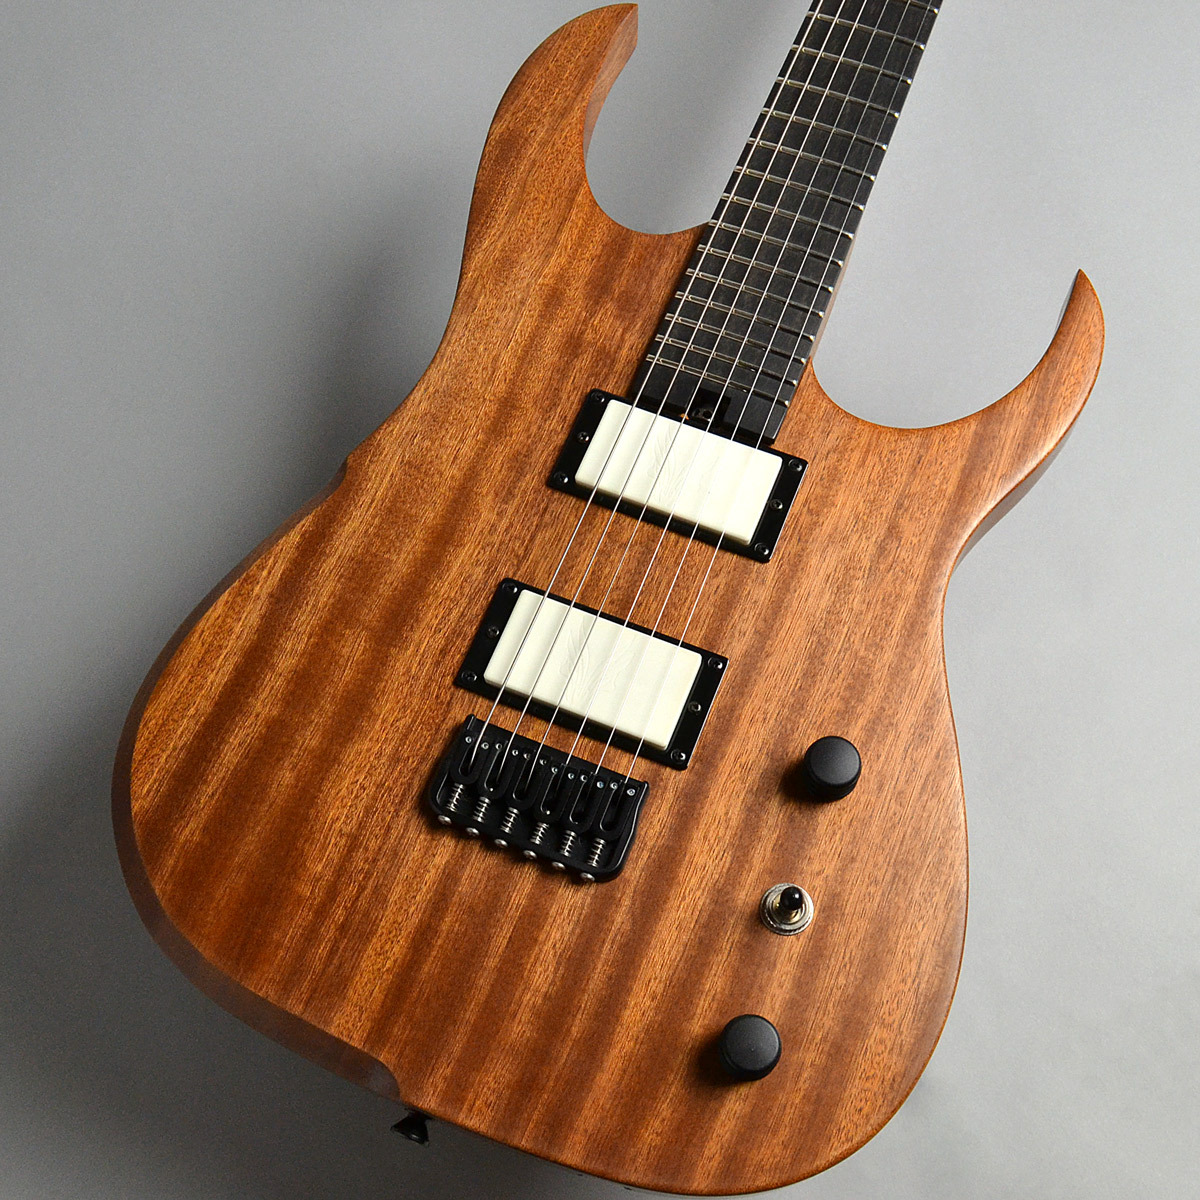 Hufschmid Guitars Helldunkel 6 3o3 head 【ハフシュミッドギター】【新宿PePe店】